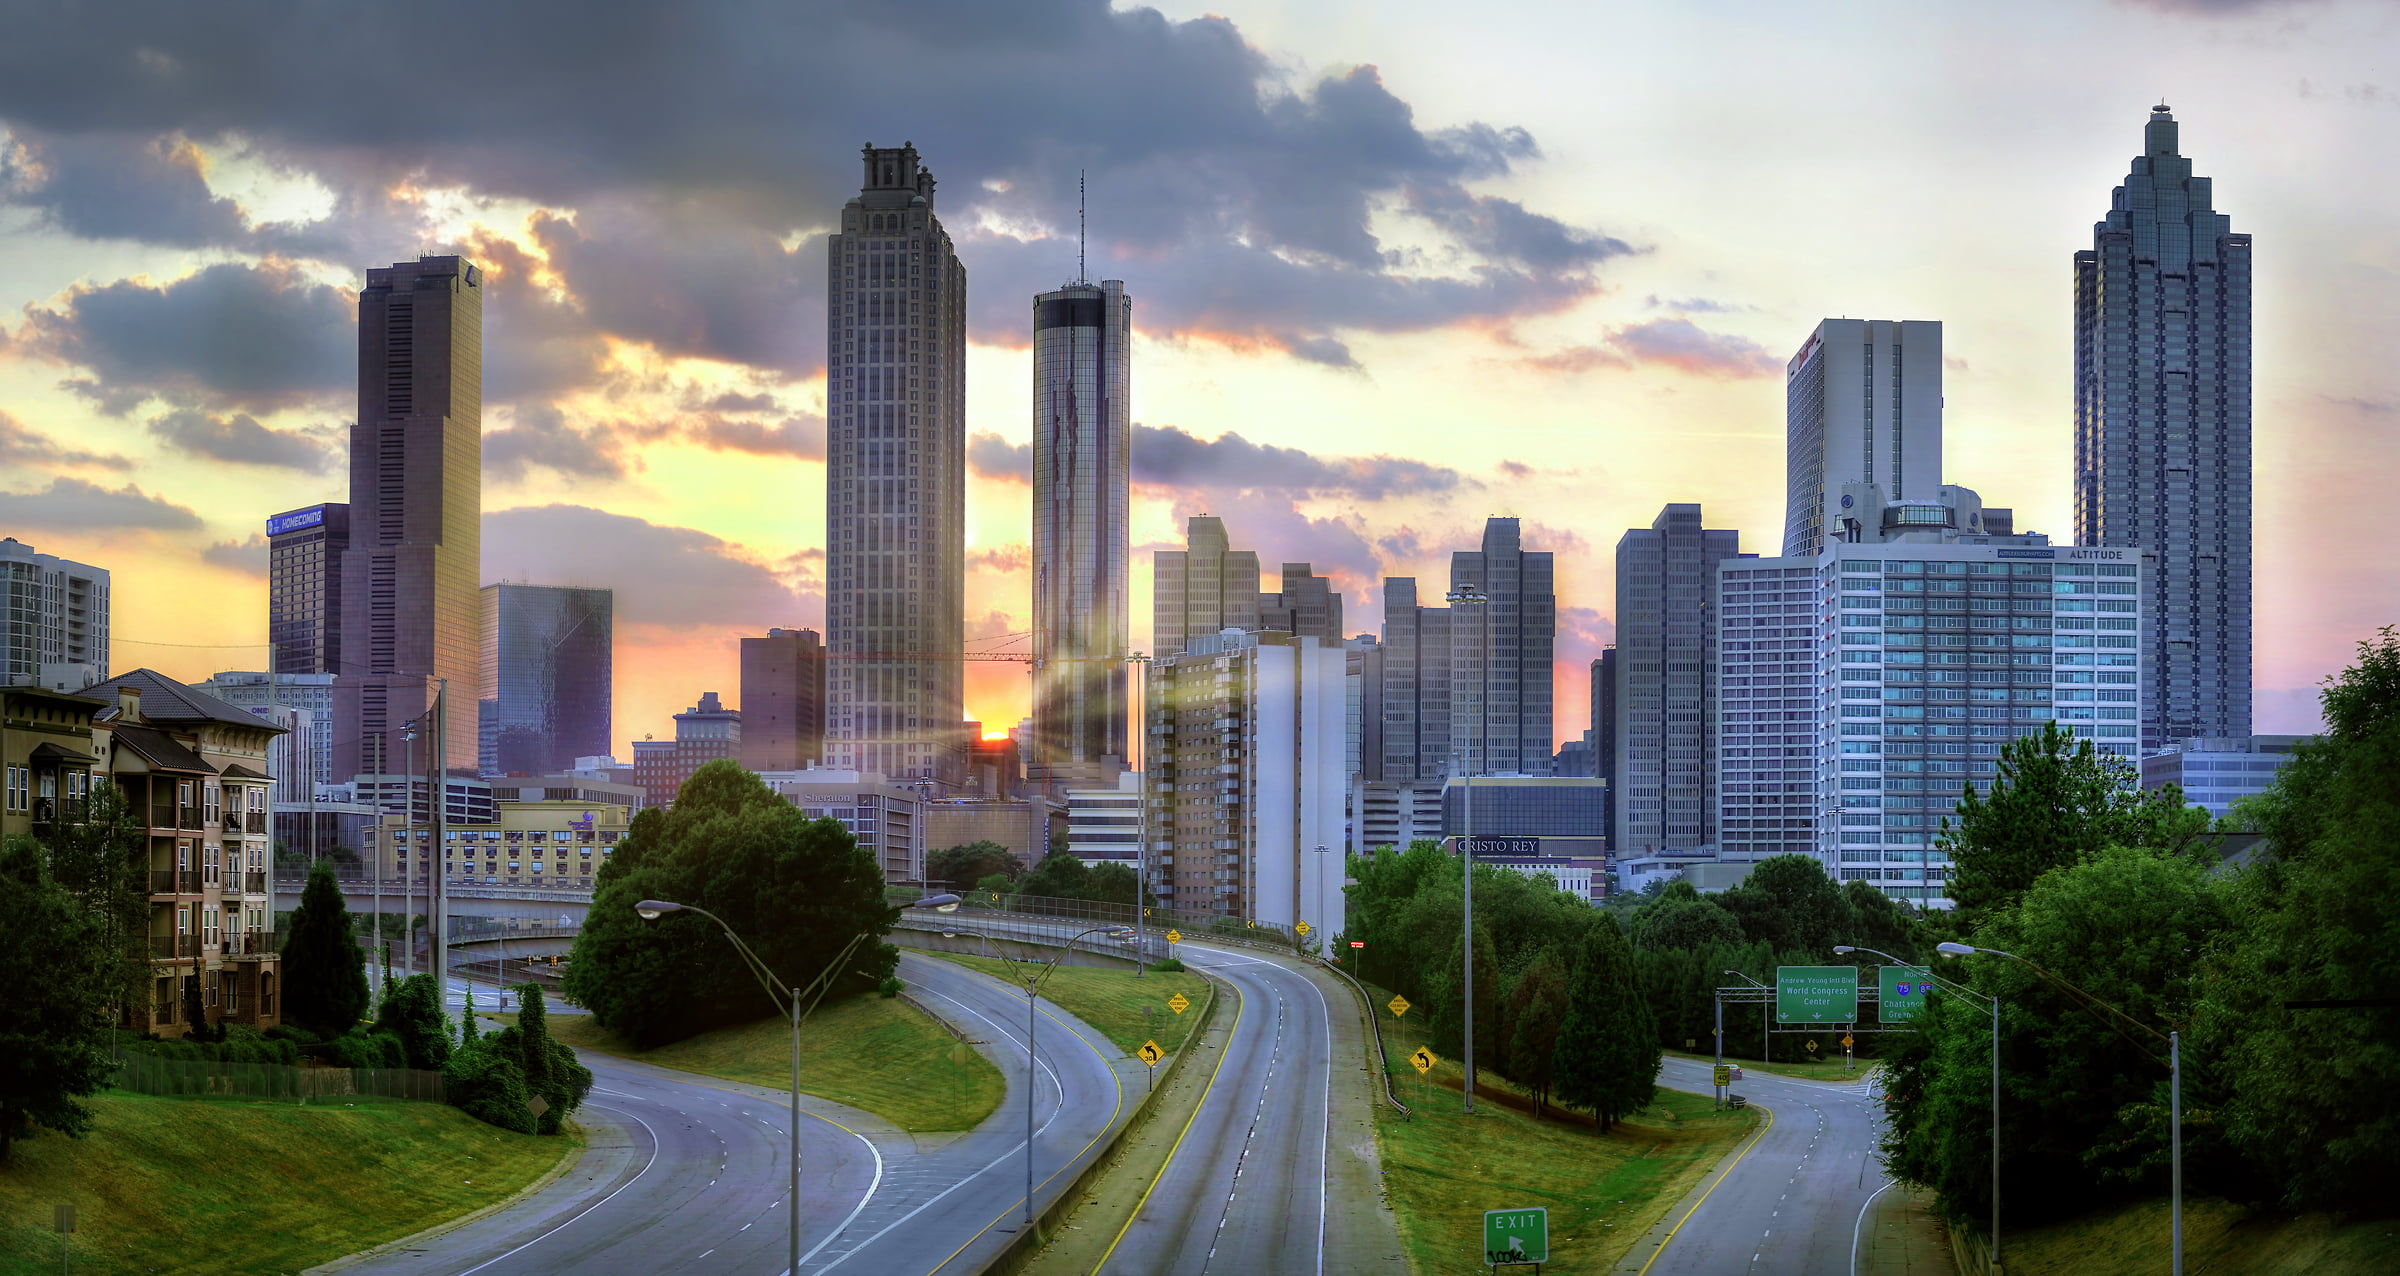 401 megapixels! A very high resolution, large-format VAST photo print of sunset over the downtown Atlanta skyline; cityscape photograph created by Phil Crawshay in Atlanta, Georgia